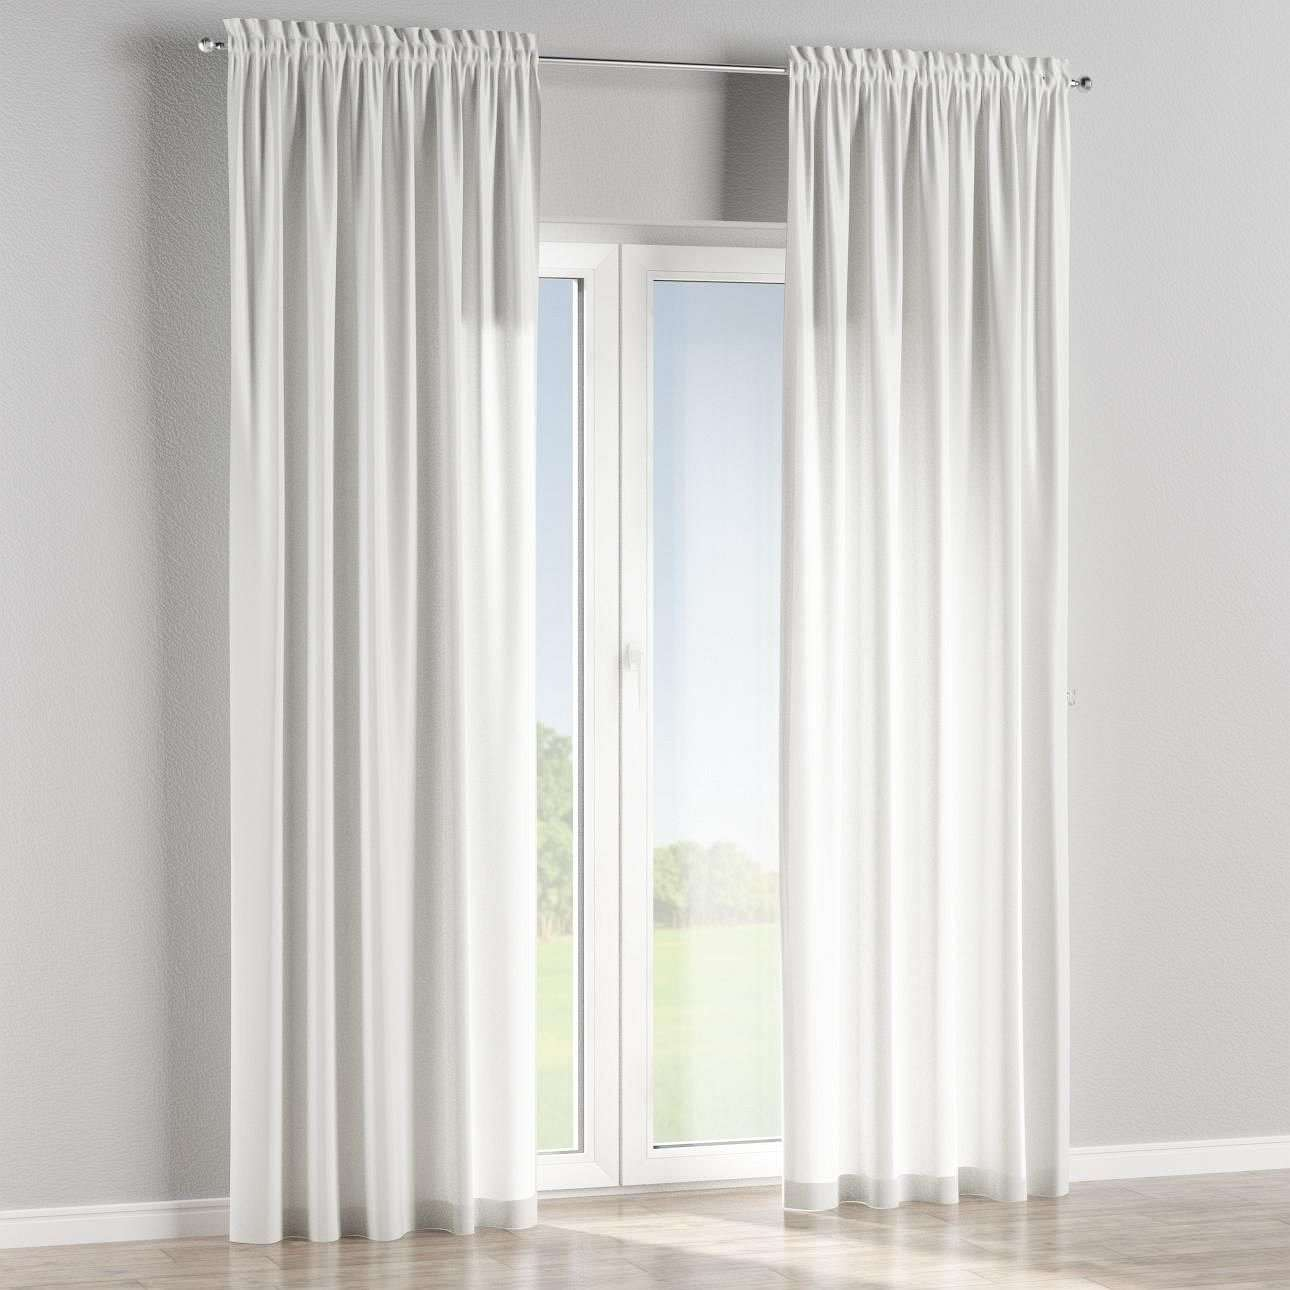 Slot and frill curtains in collection Mirella, fabric: 141-11